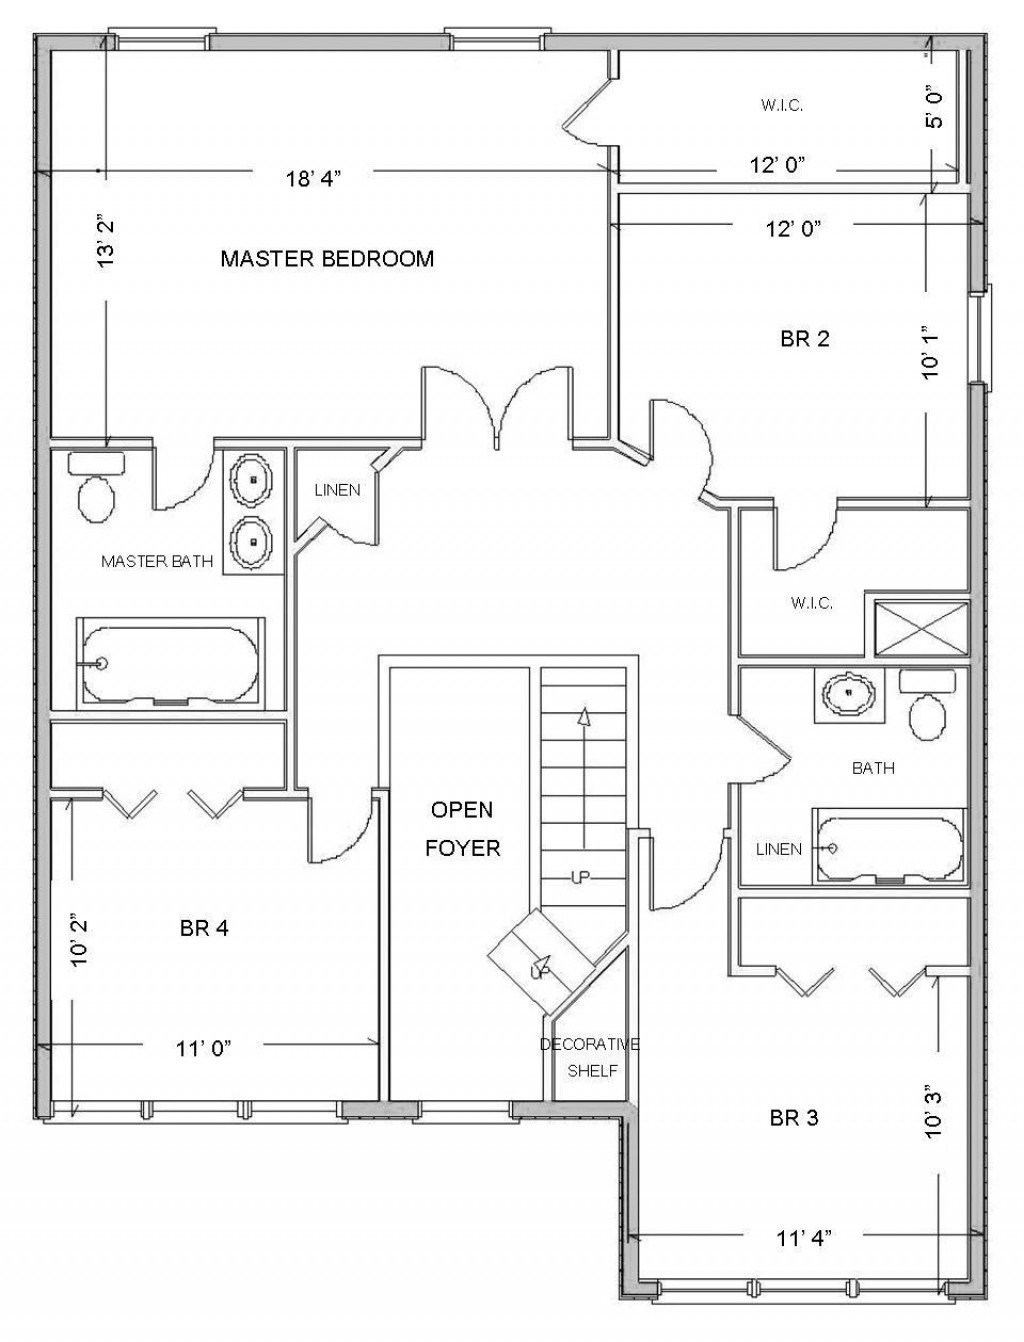 002 Frightening Free Floor Plan Template Concept  Excel Home House SampleLarge